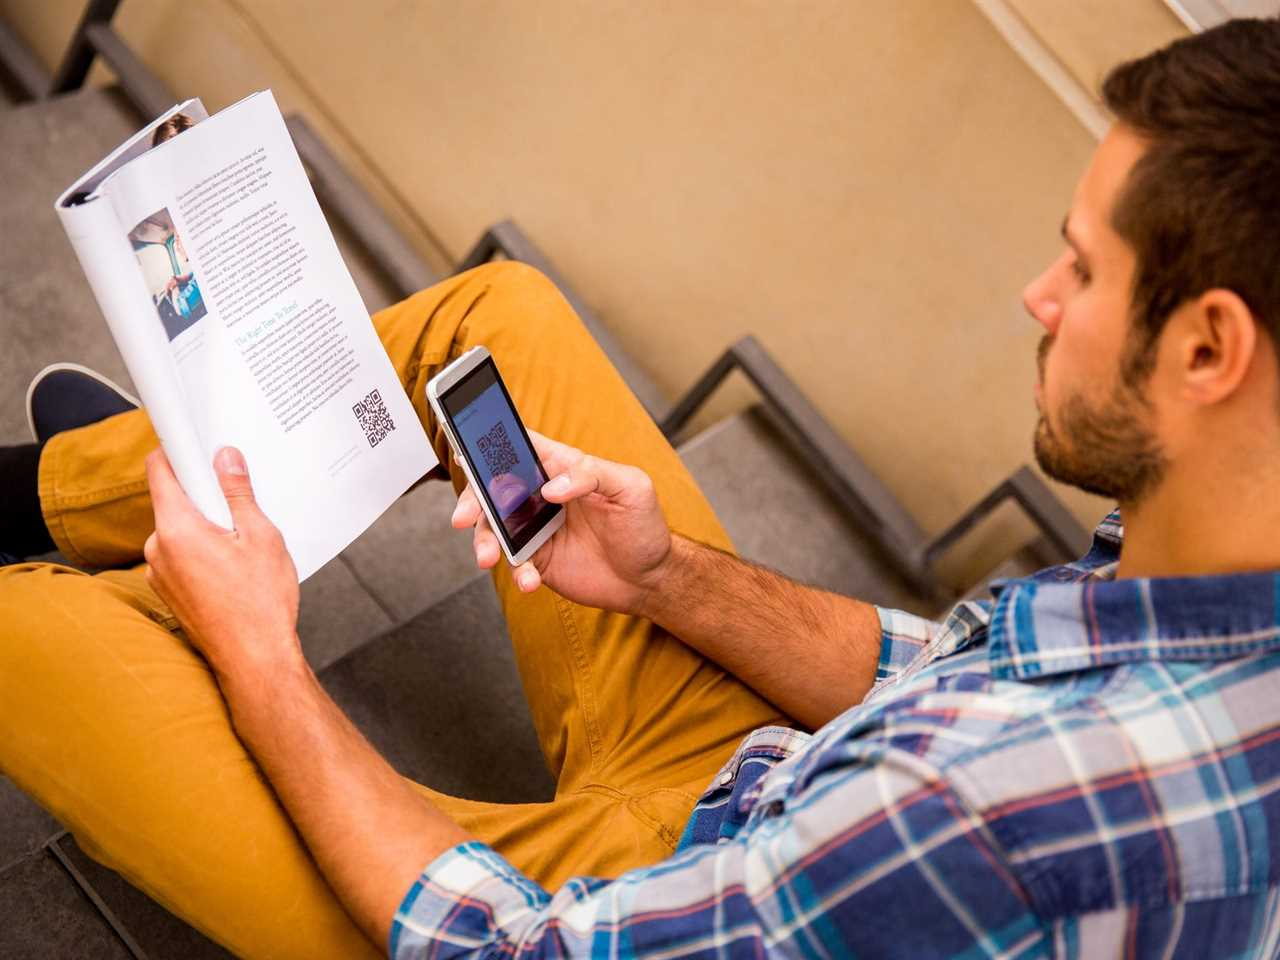 Man scanning QR Code in magazine